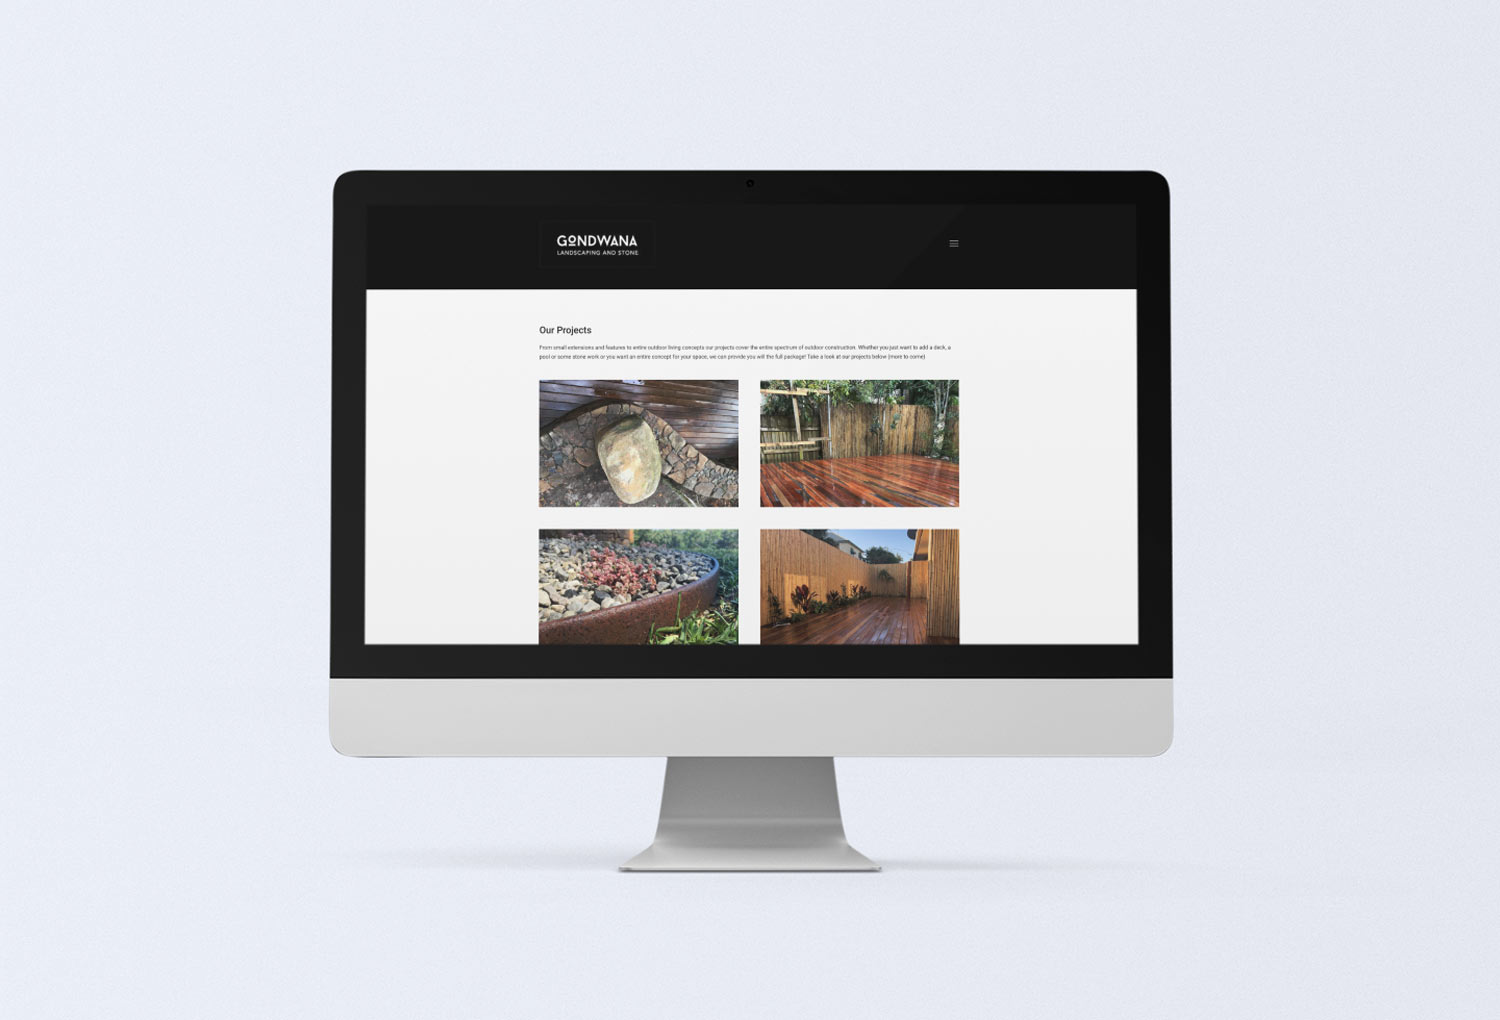 Gondwana Landscaping and Stone Projects Page Website Design By Mango Tree Media